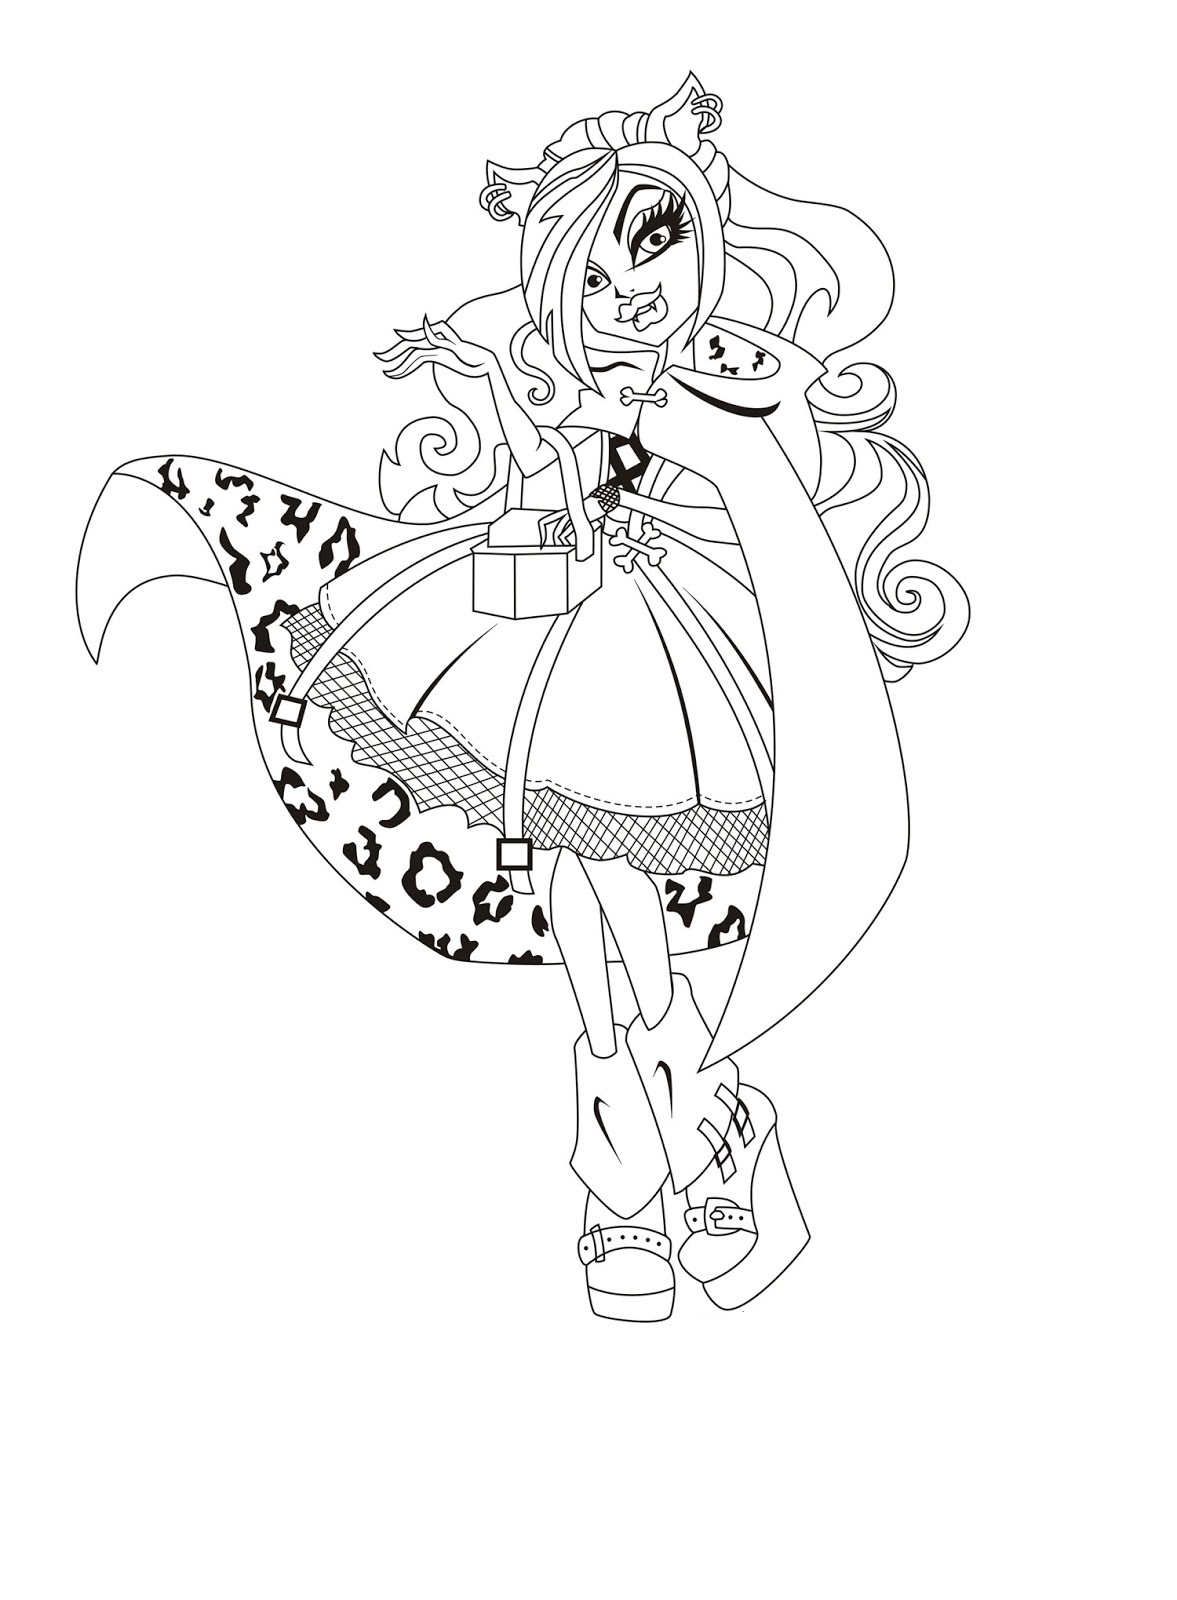 coloring pitchers : Monster High Coloring Page Pictures